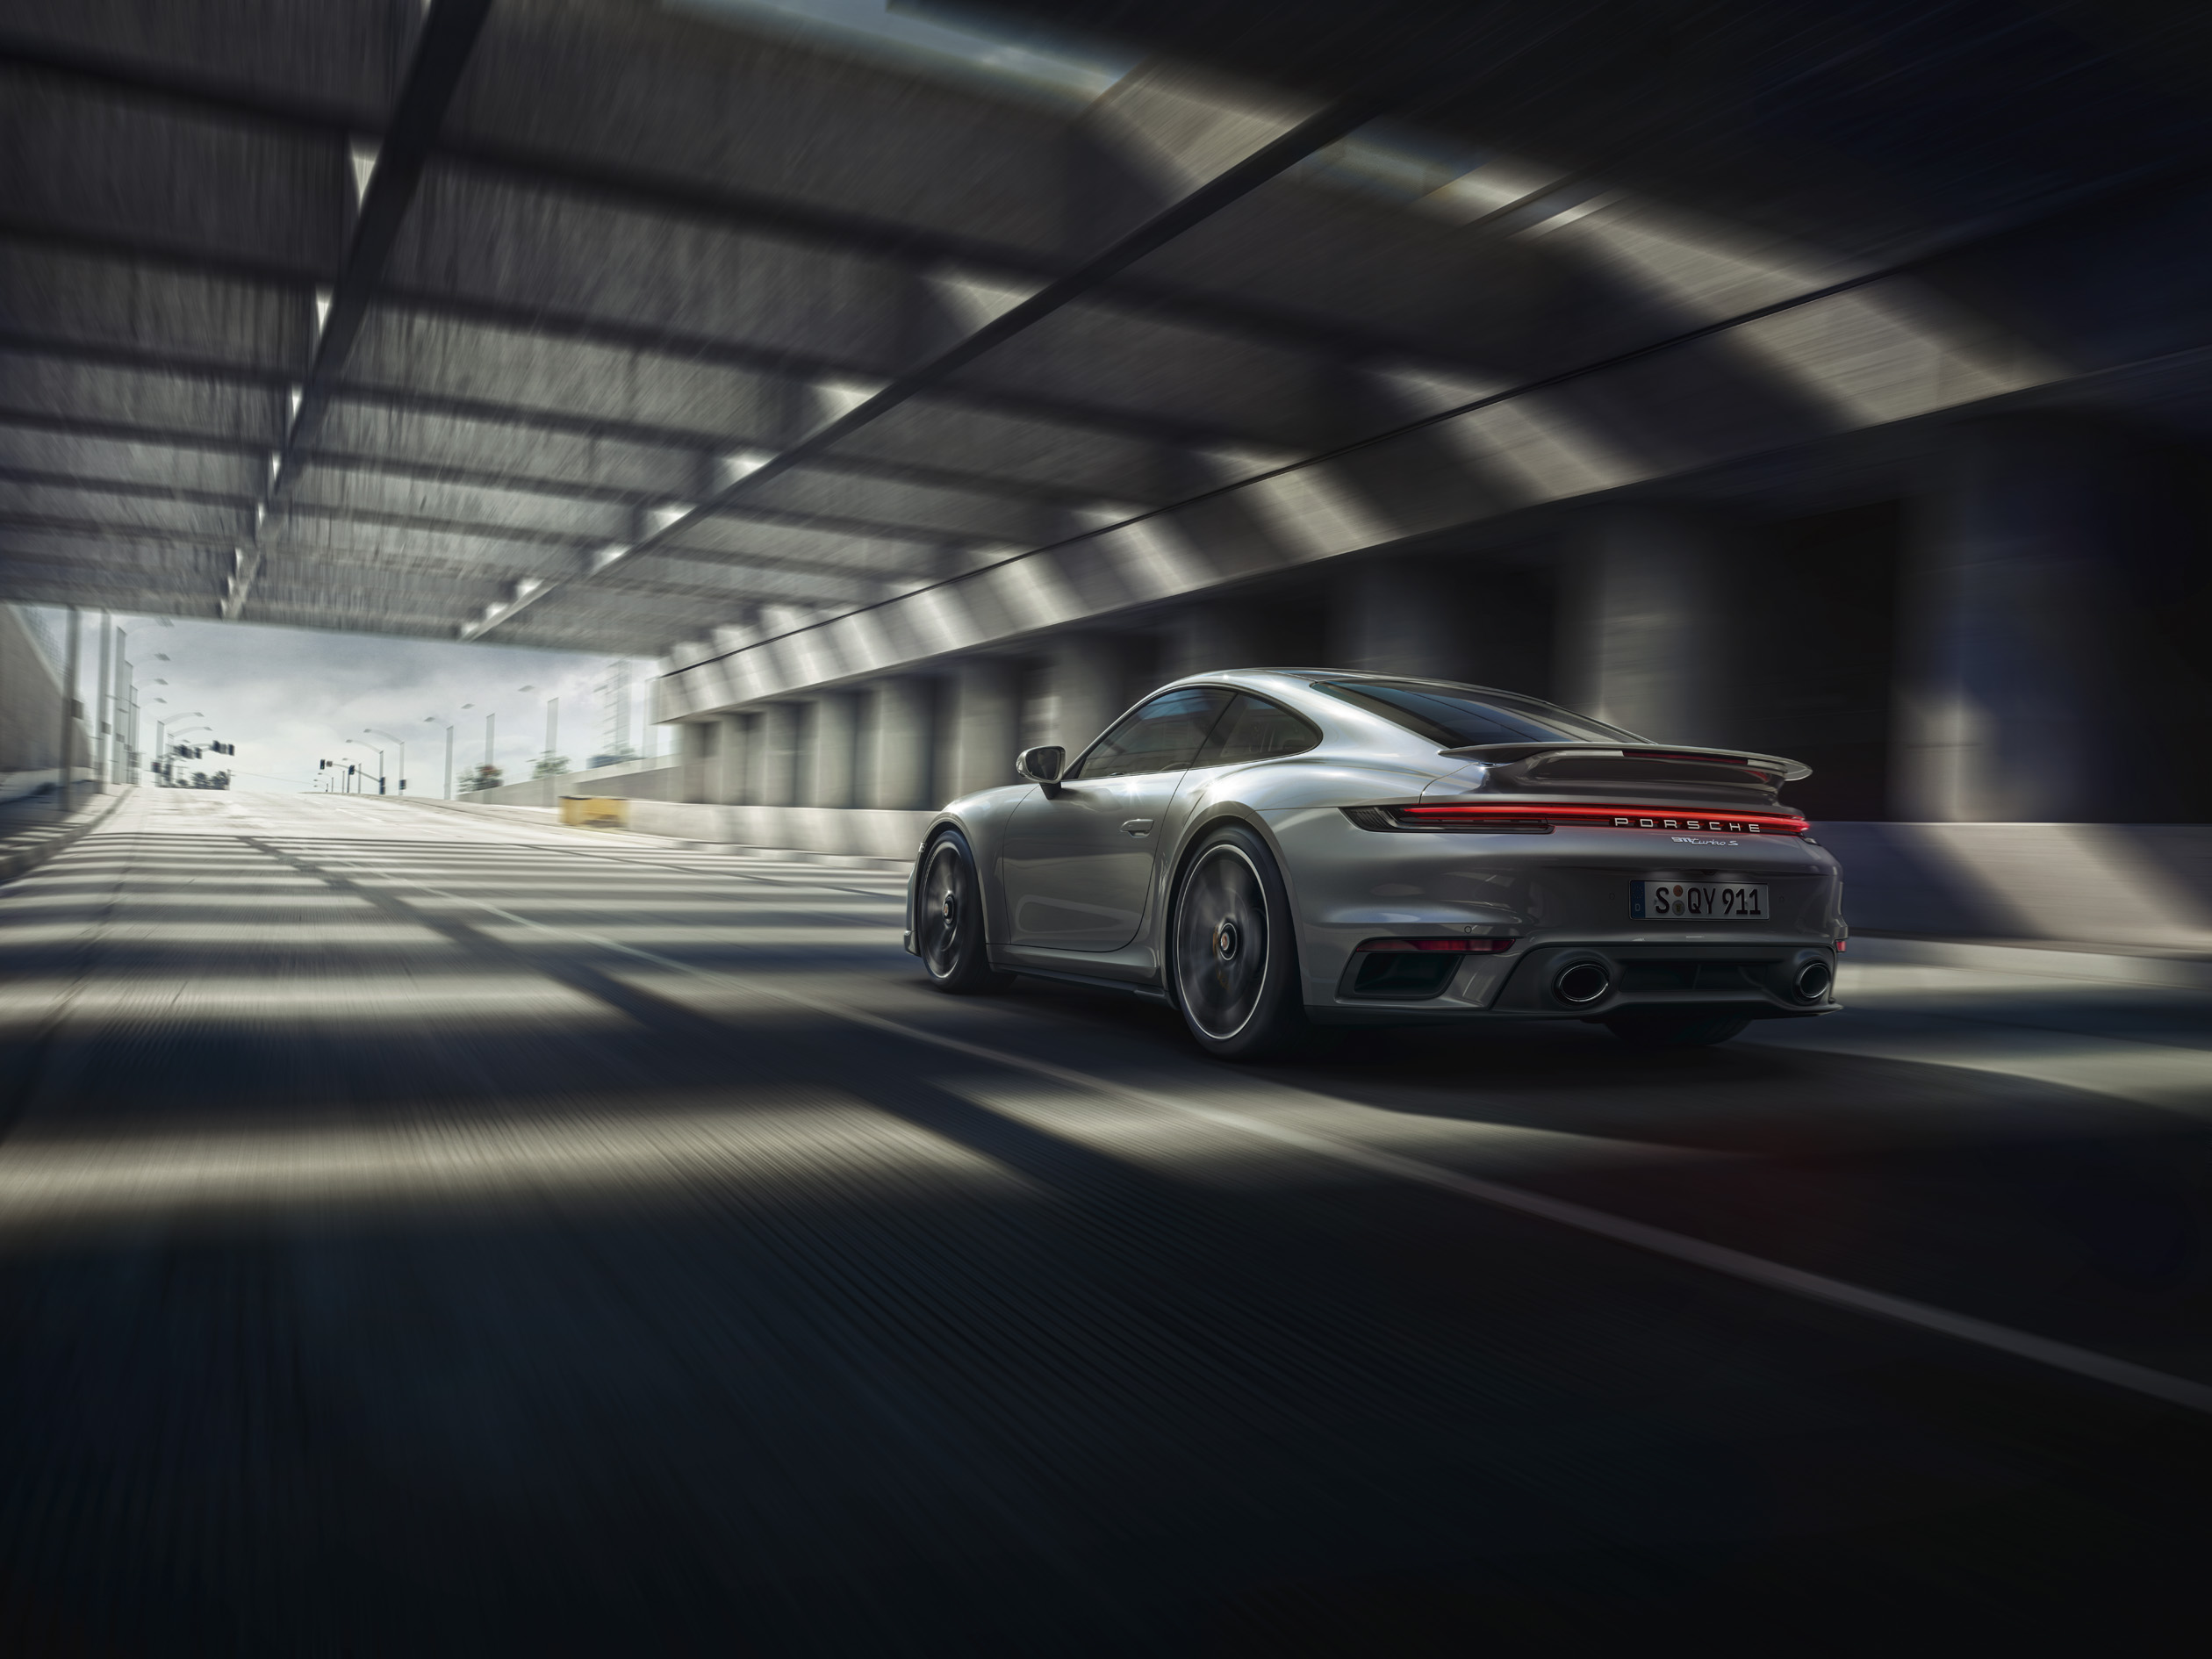 Porsche 911 Turbo S rear 3/4